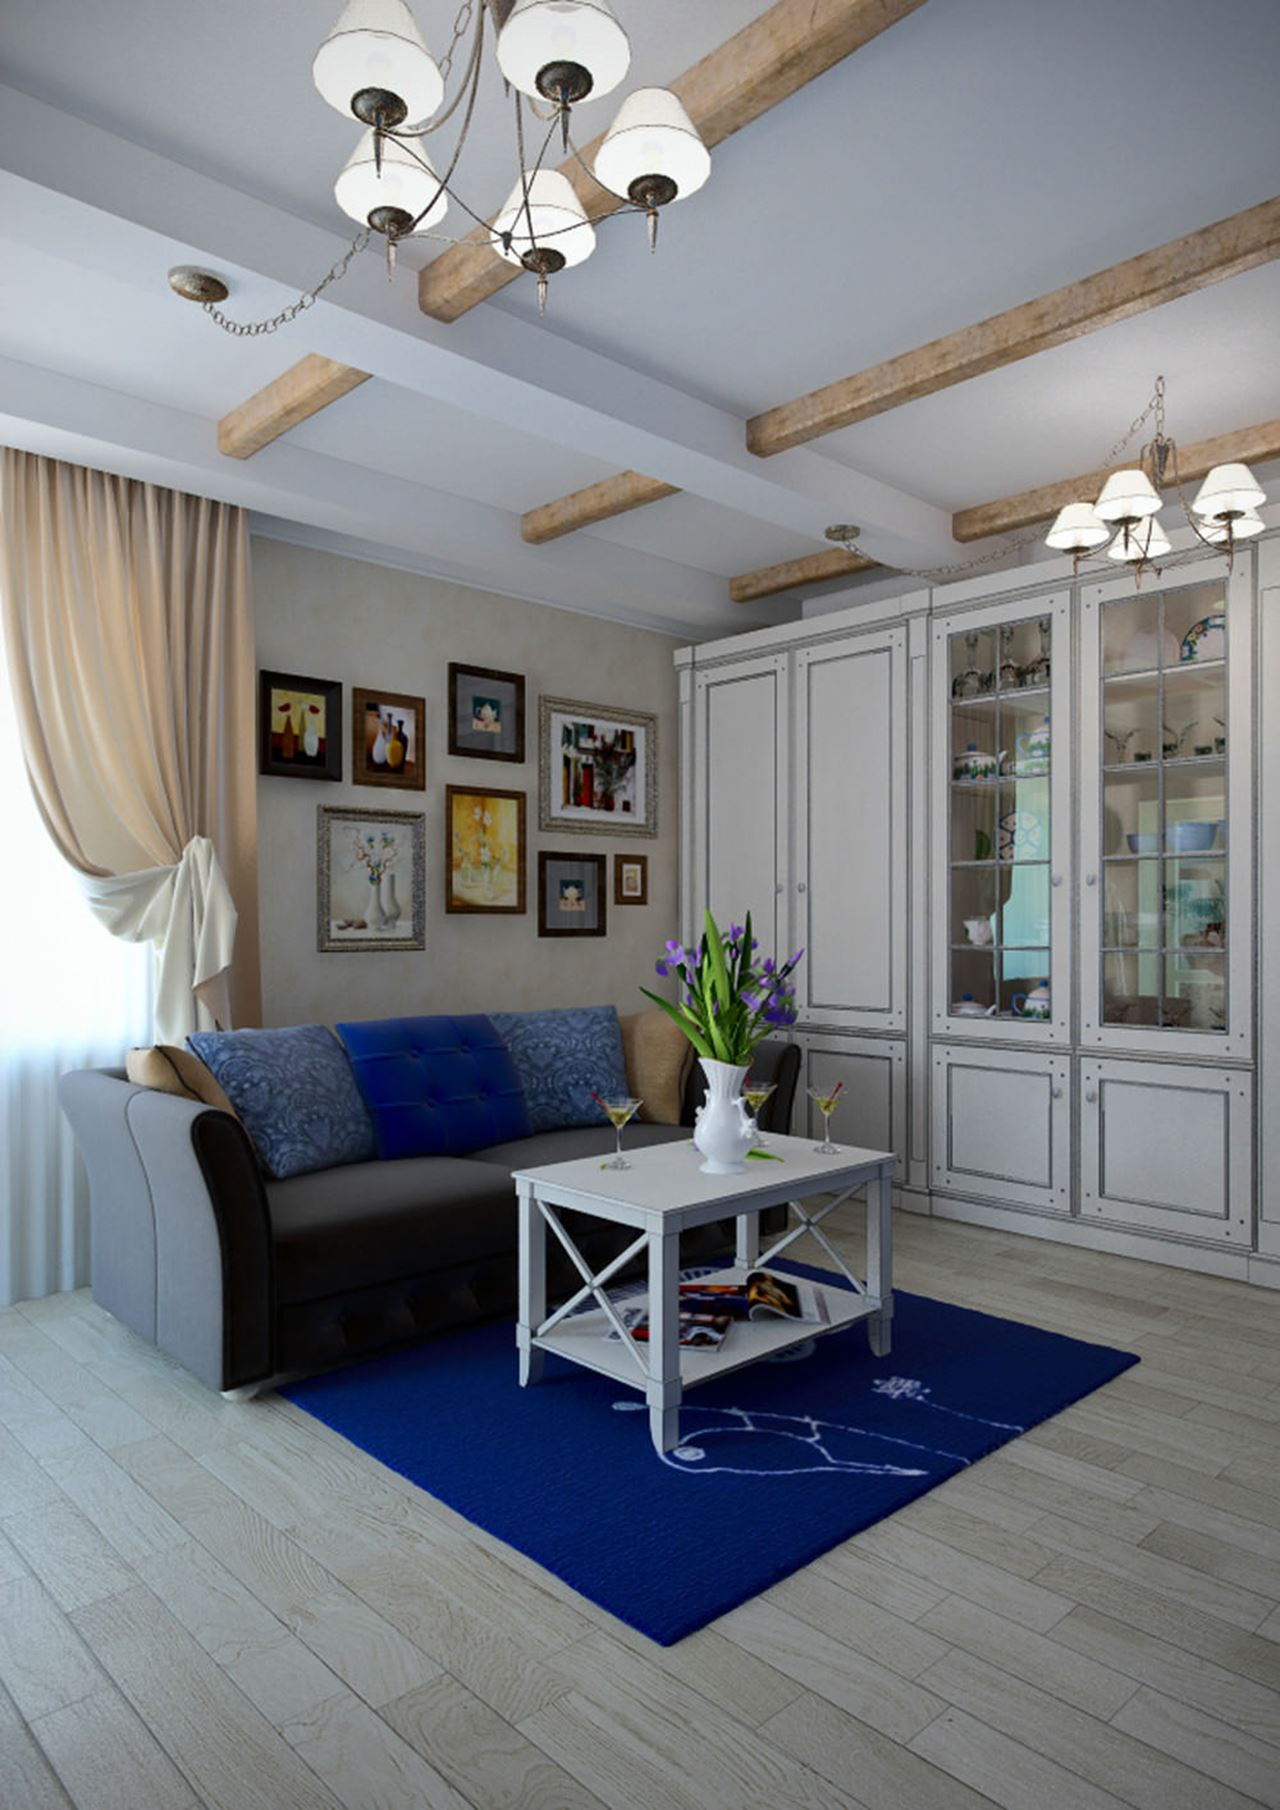 Room Design Interior: Apartment Interior Design In The Provence Style